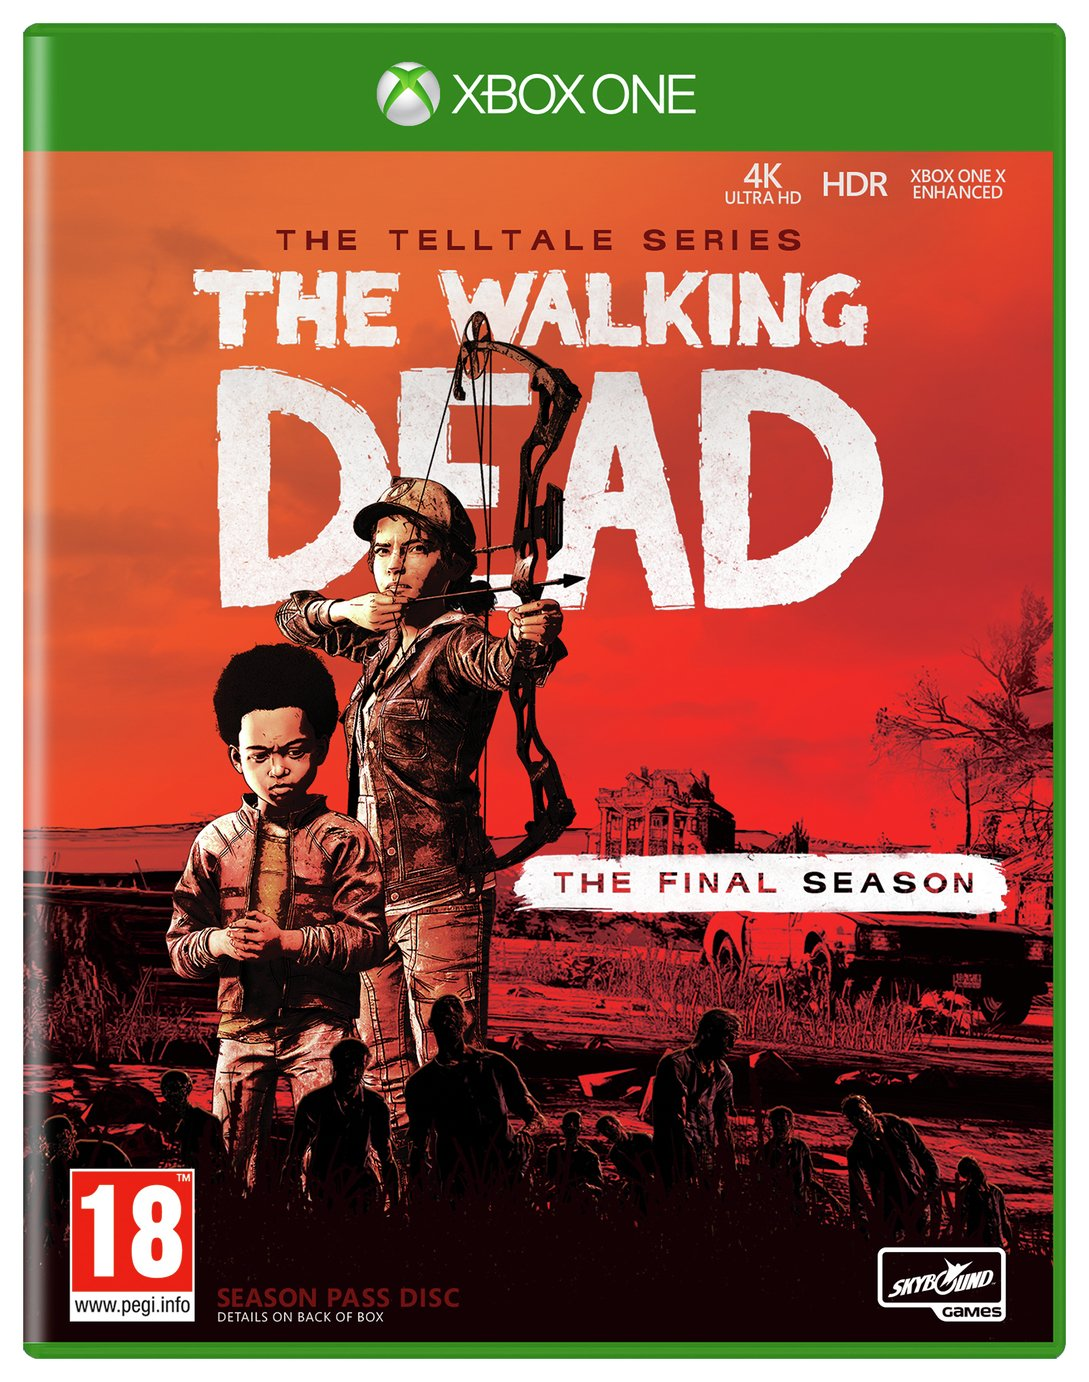 The Walking Dead Season 4 Xbox One Game